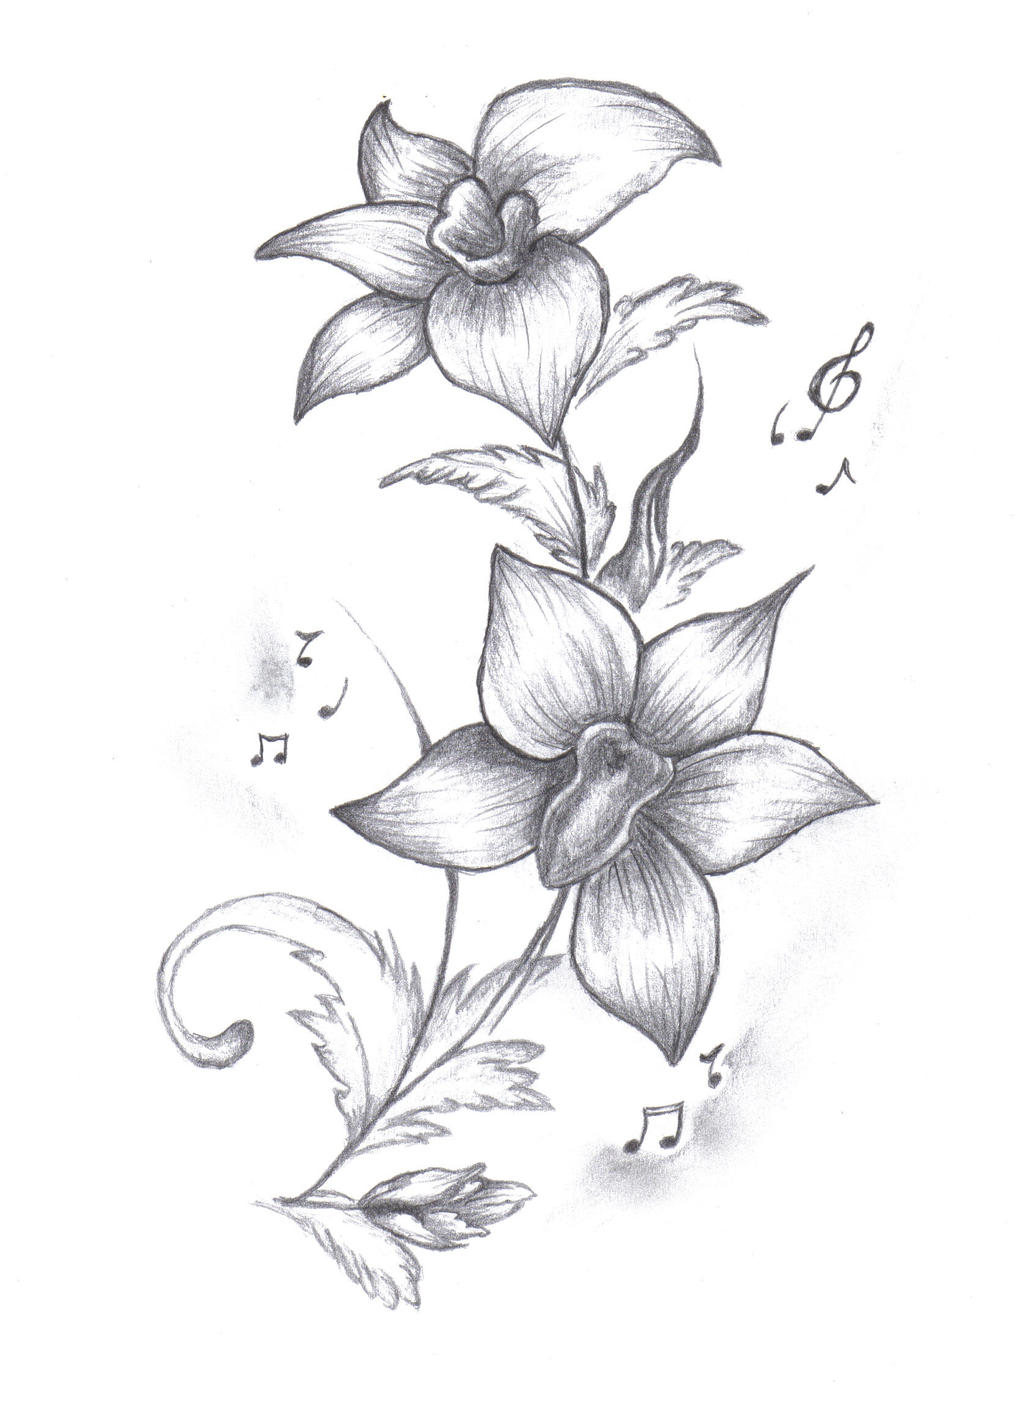 Uncategorized Orchid Drawings habrumalas orchids drawings images drawings